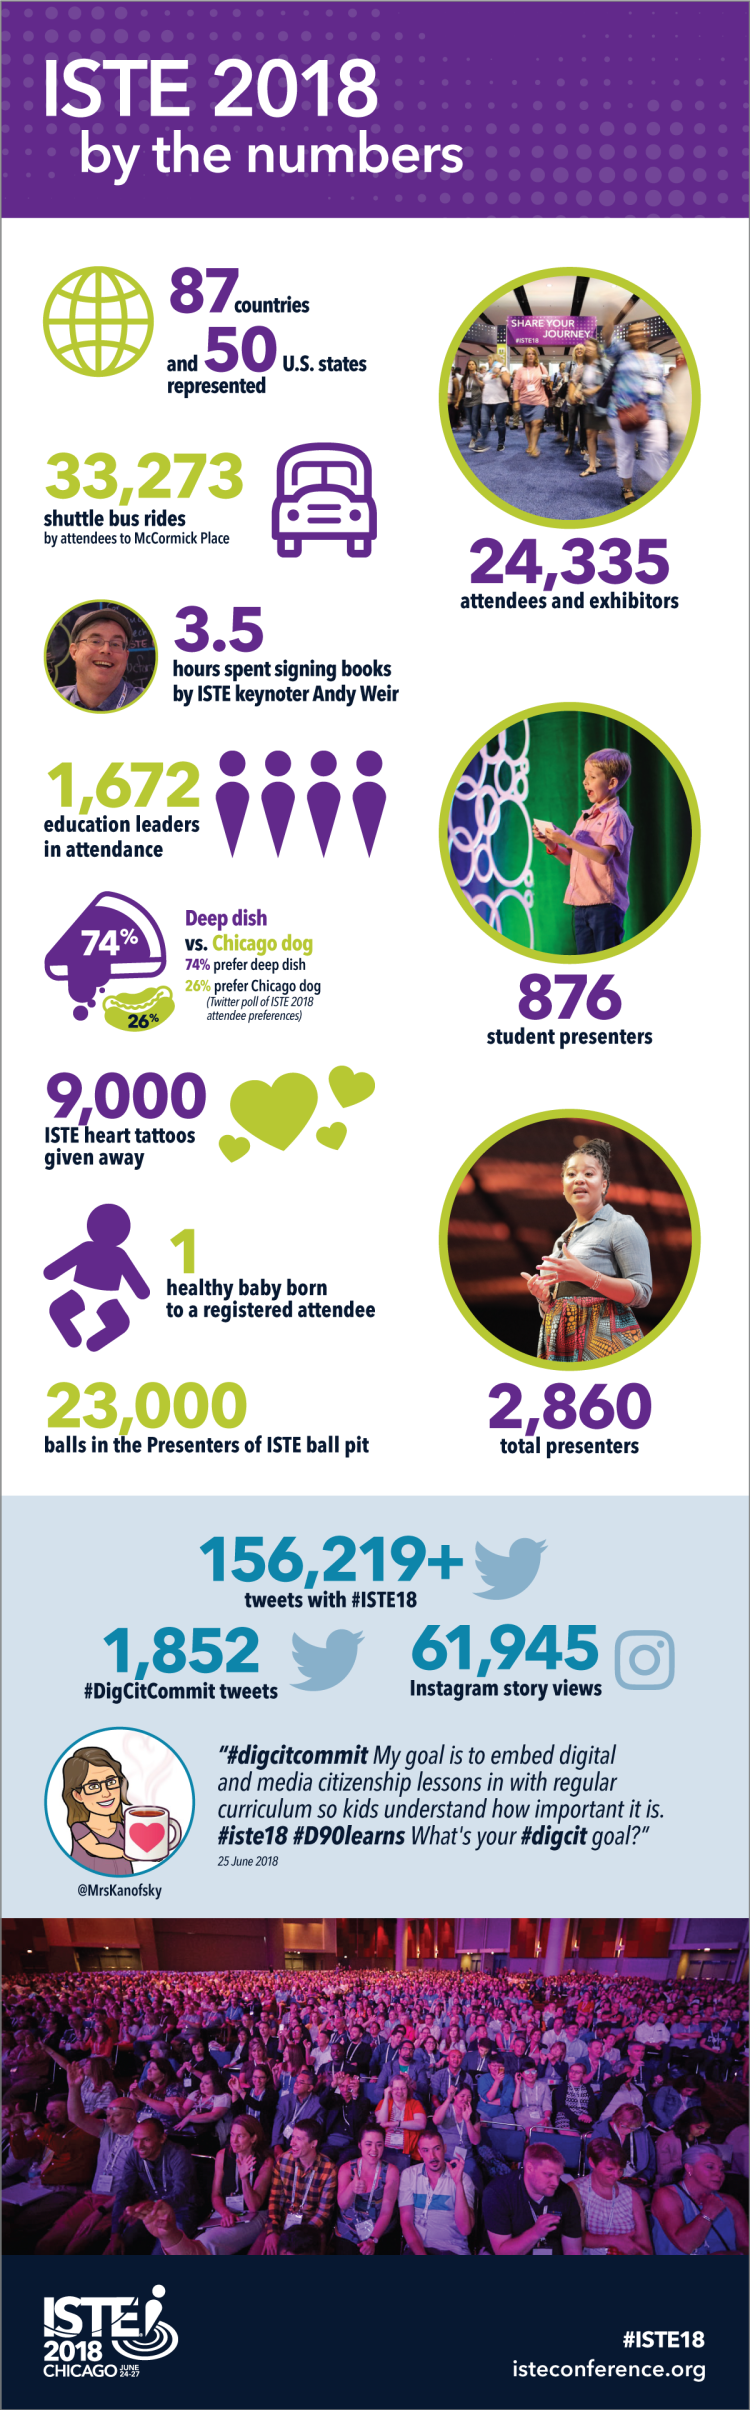 iste-2018-by-the-numbers